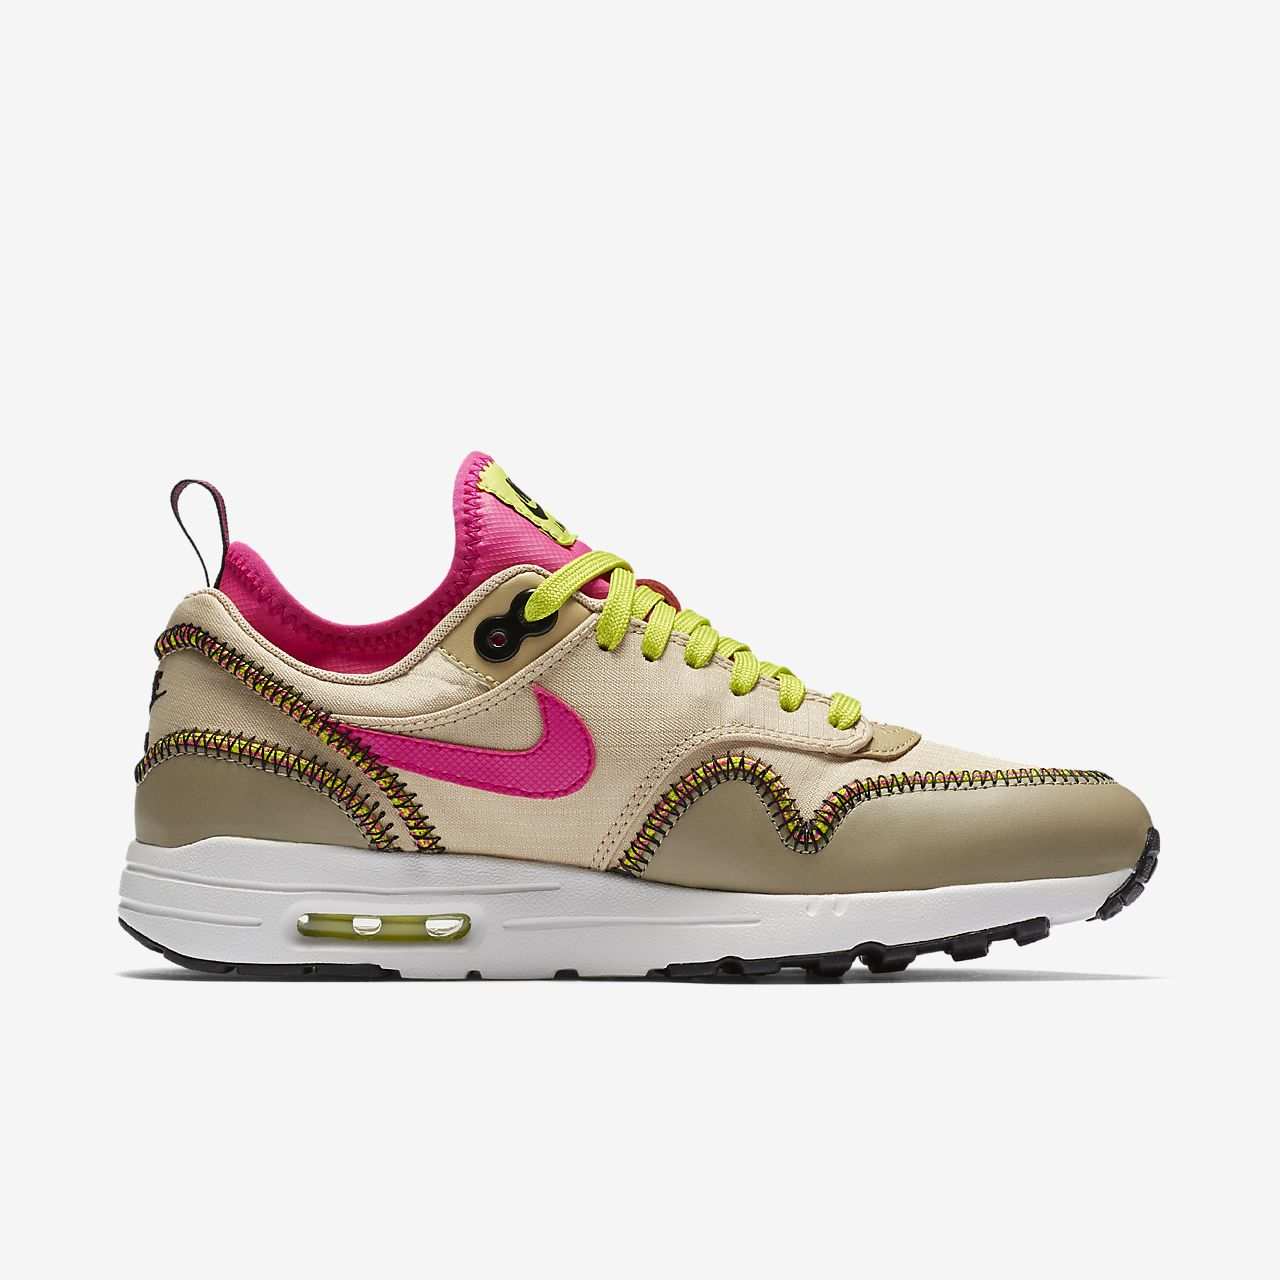 span itempropnameNike Air Max 90 Womens BluePinkspan